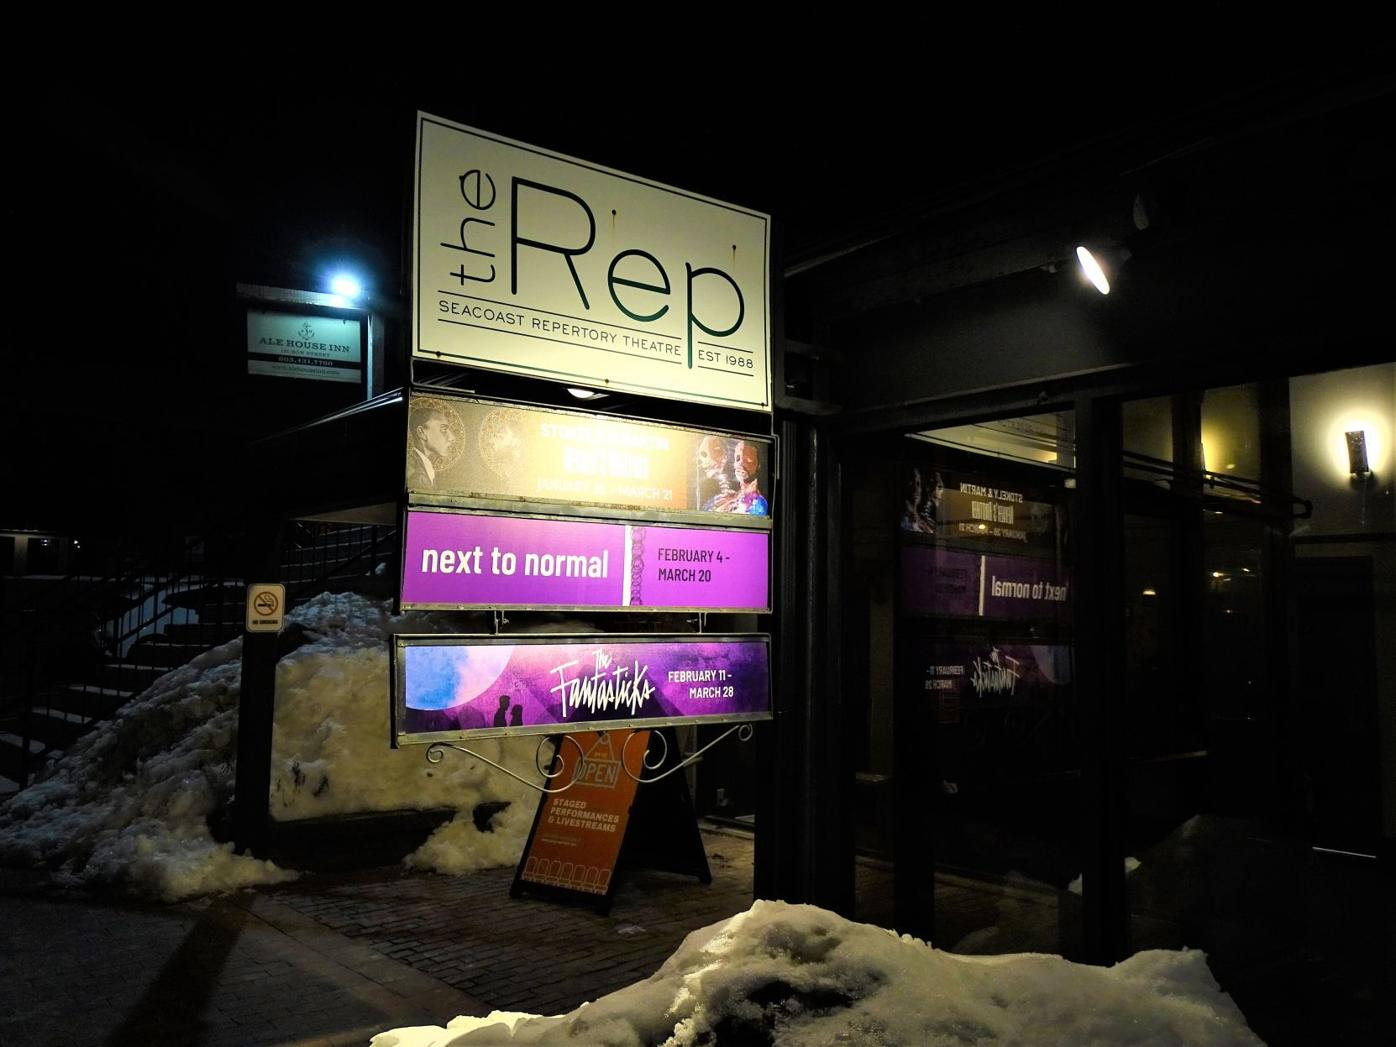 Seacoast Repertory Theatre in Portsmouth